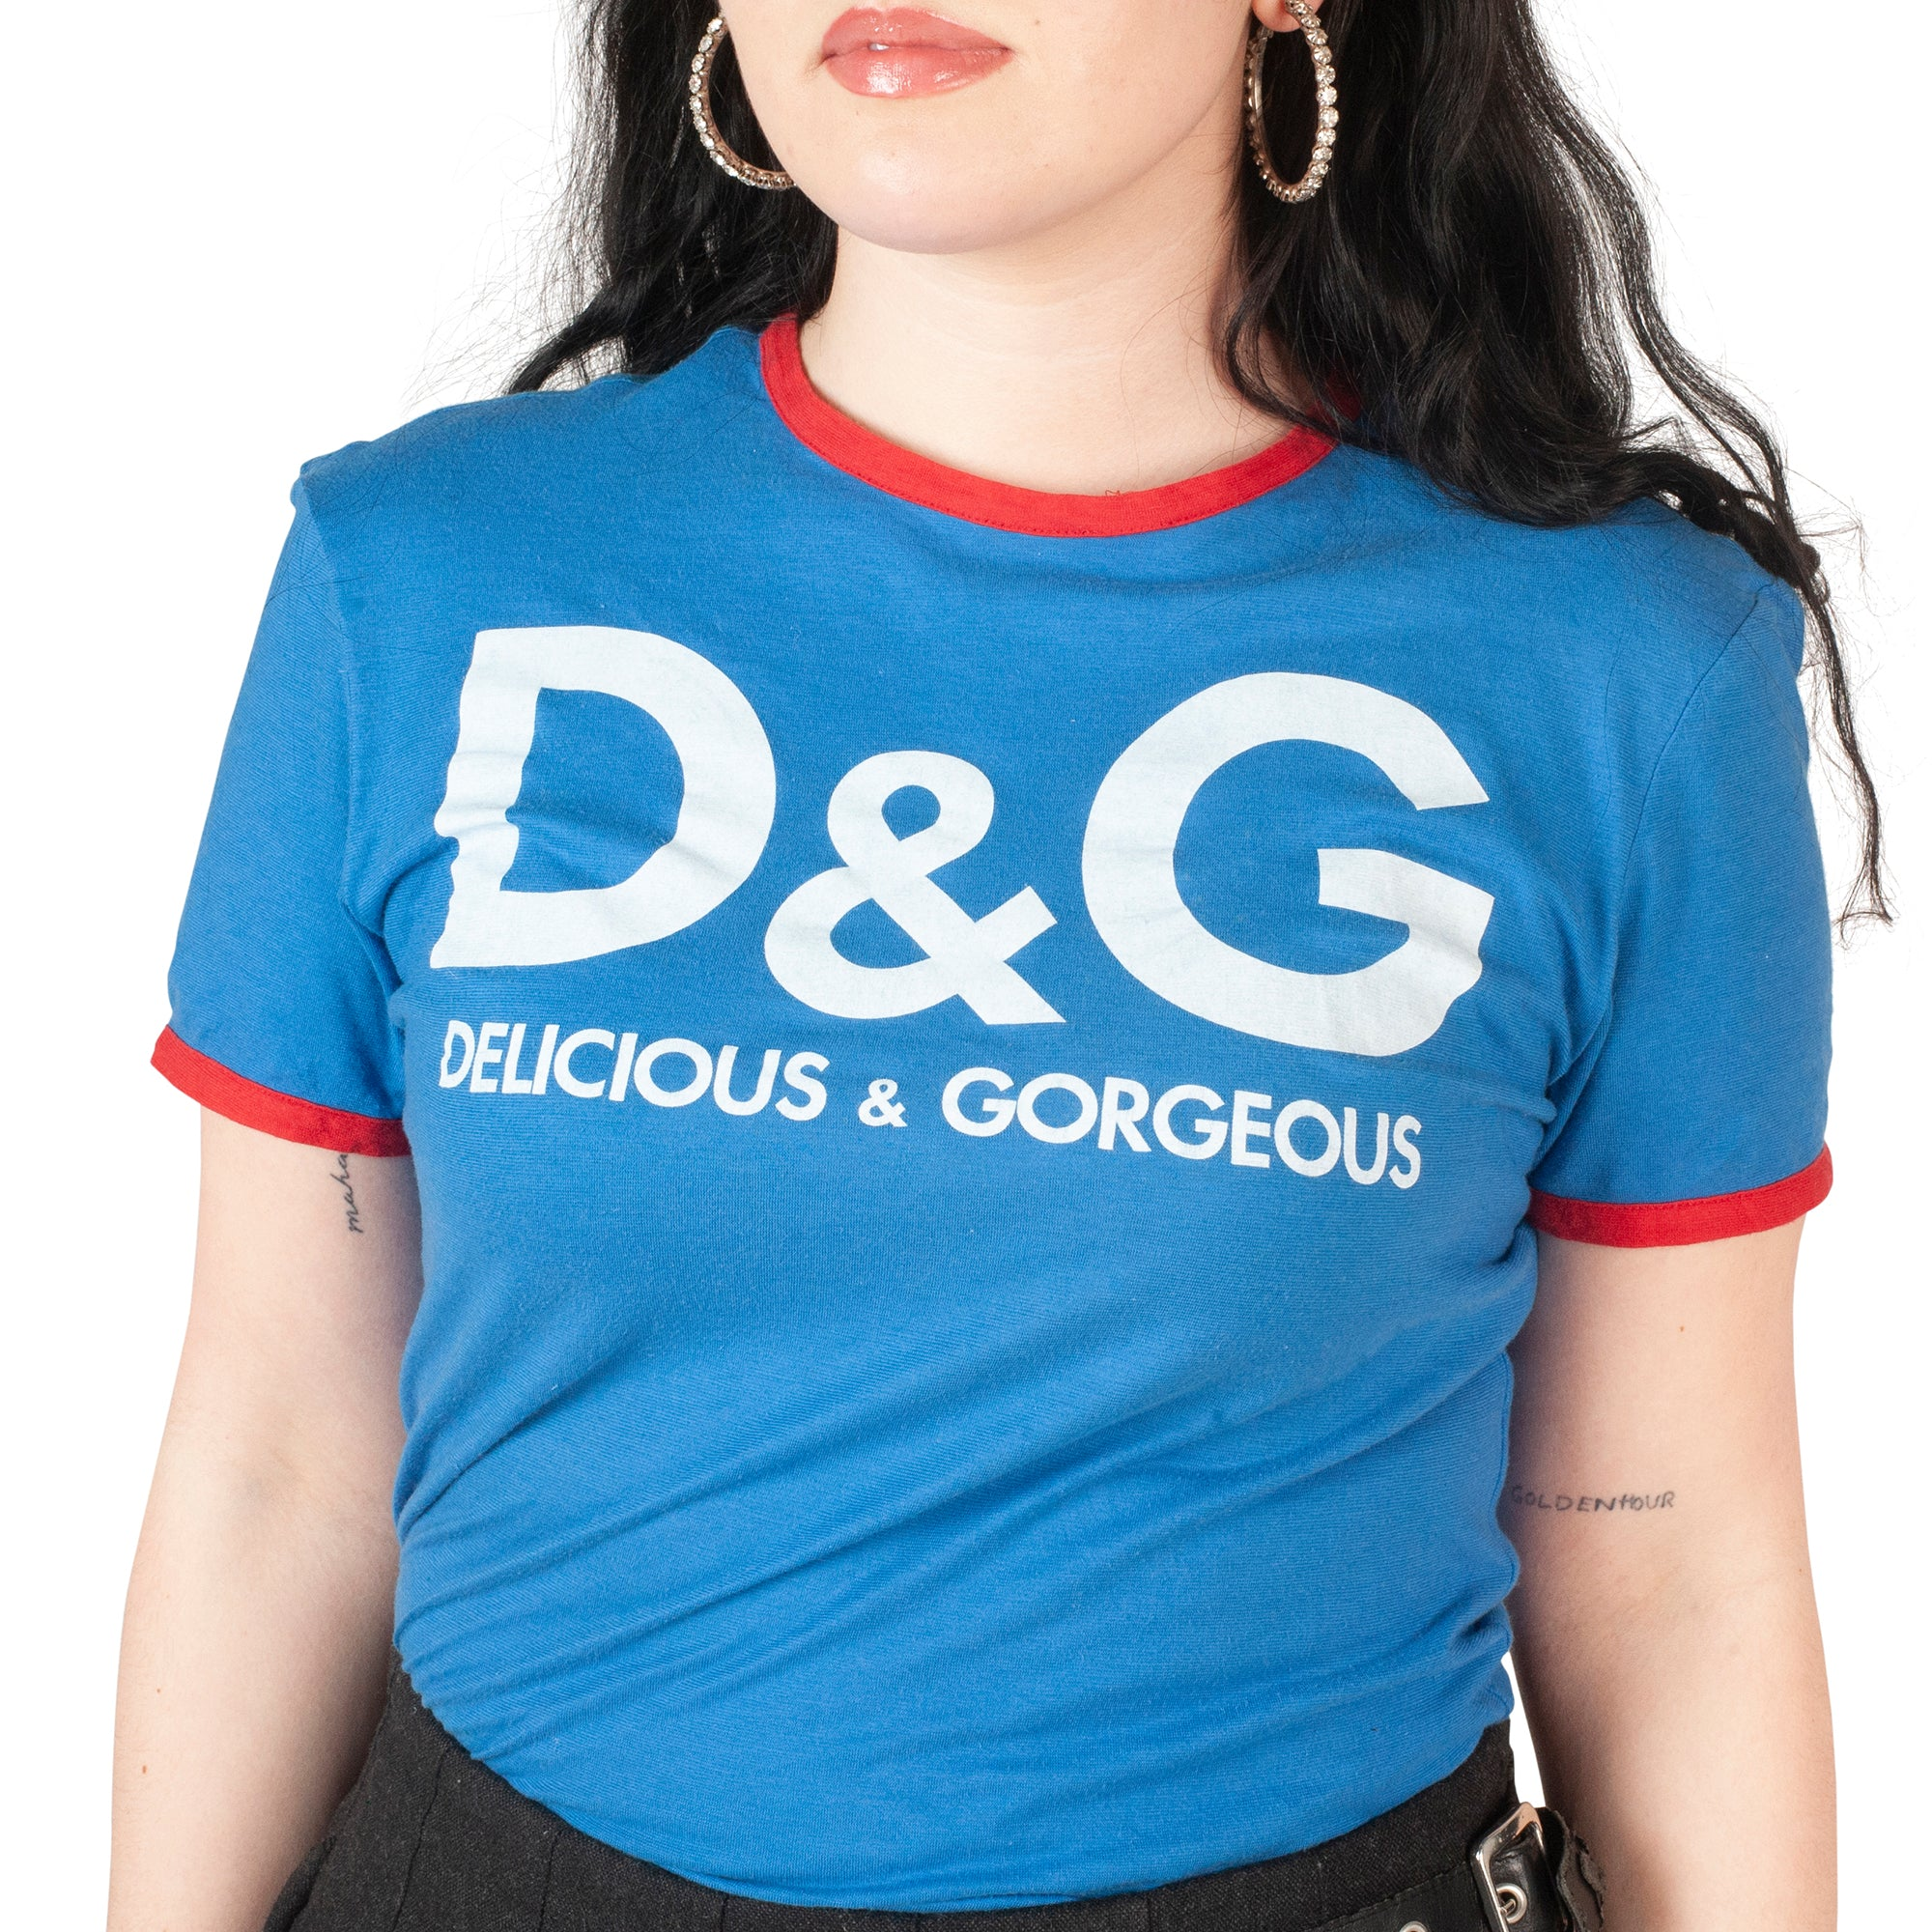 Dolce and Gabbana Delicious T-Shirt (Blue/Red) UK 6-10